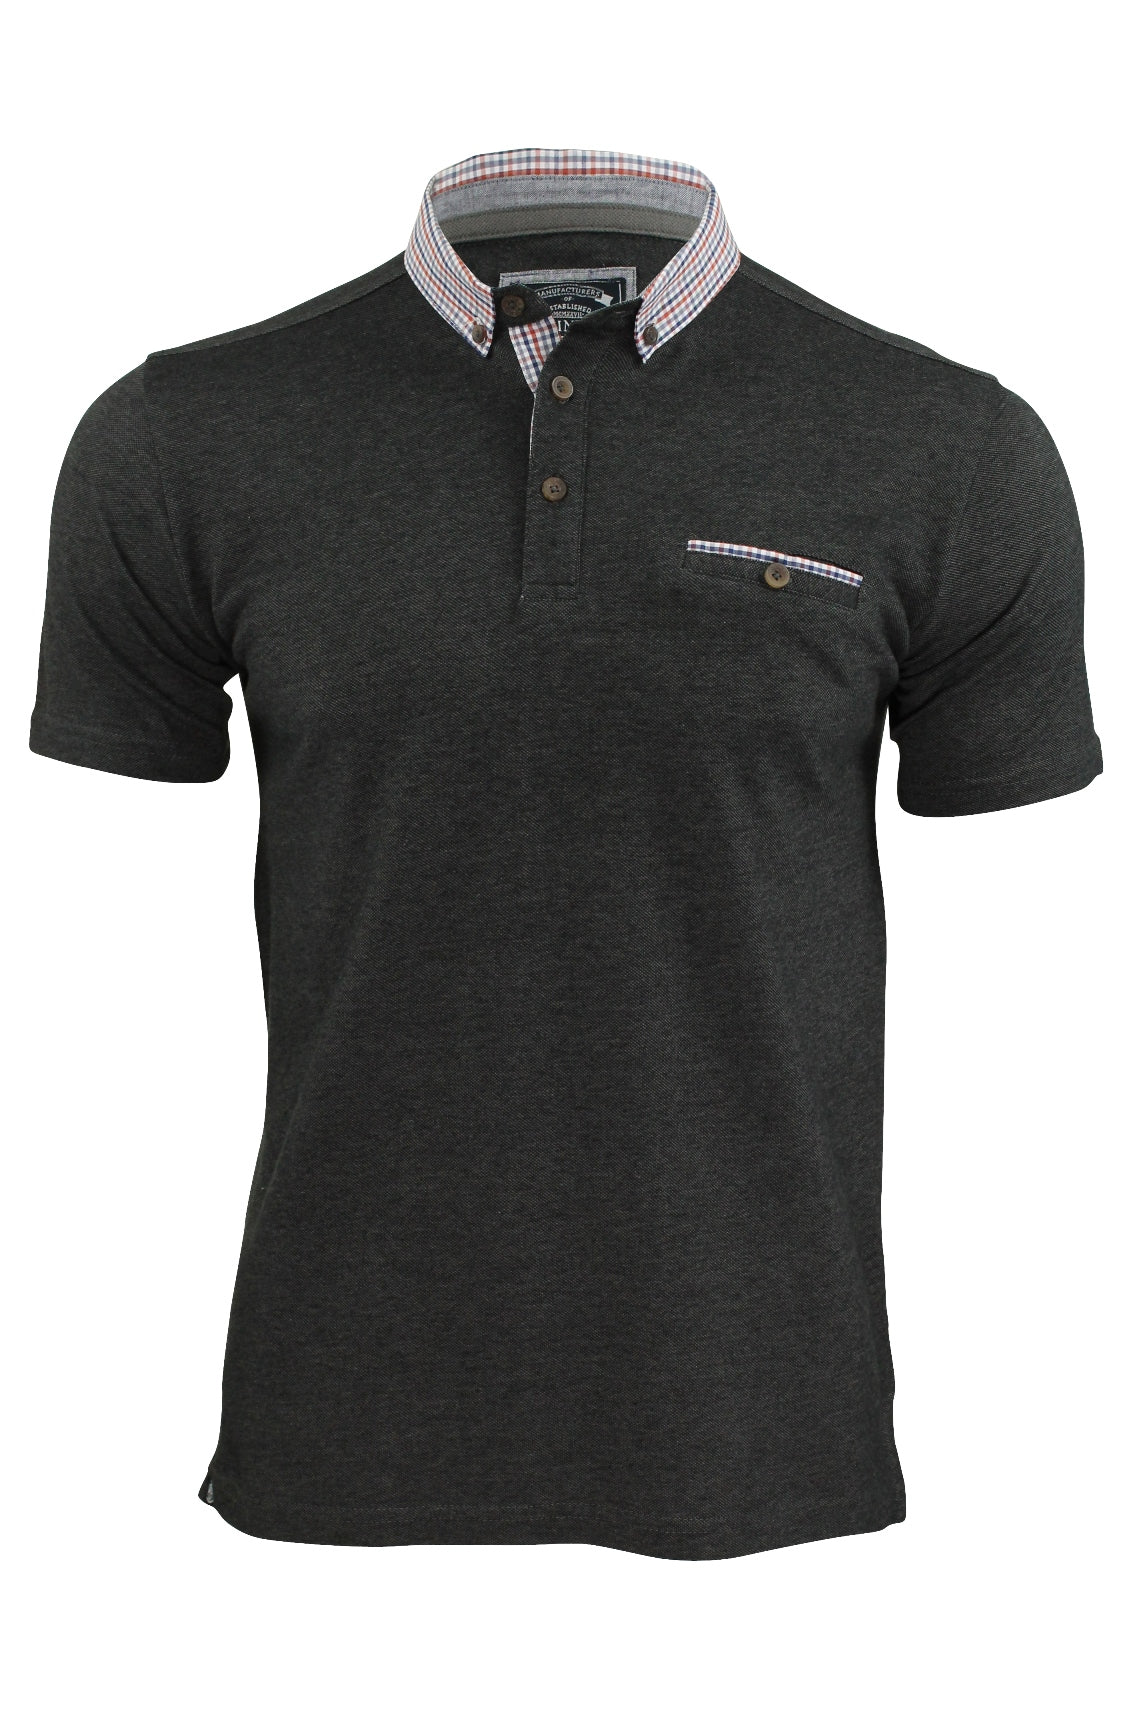 Mens Polo Shirt by Kensington Eastside 'Carndale' Short Sleeved-Main Image